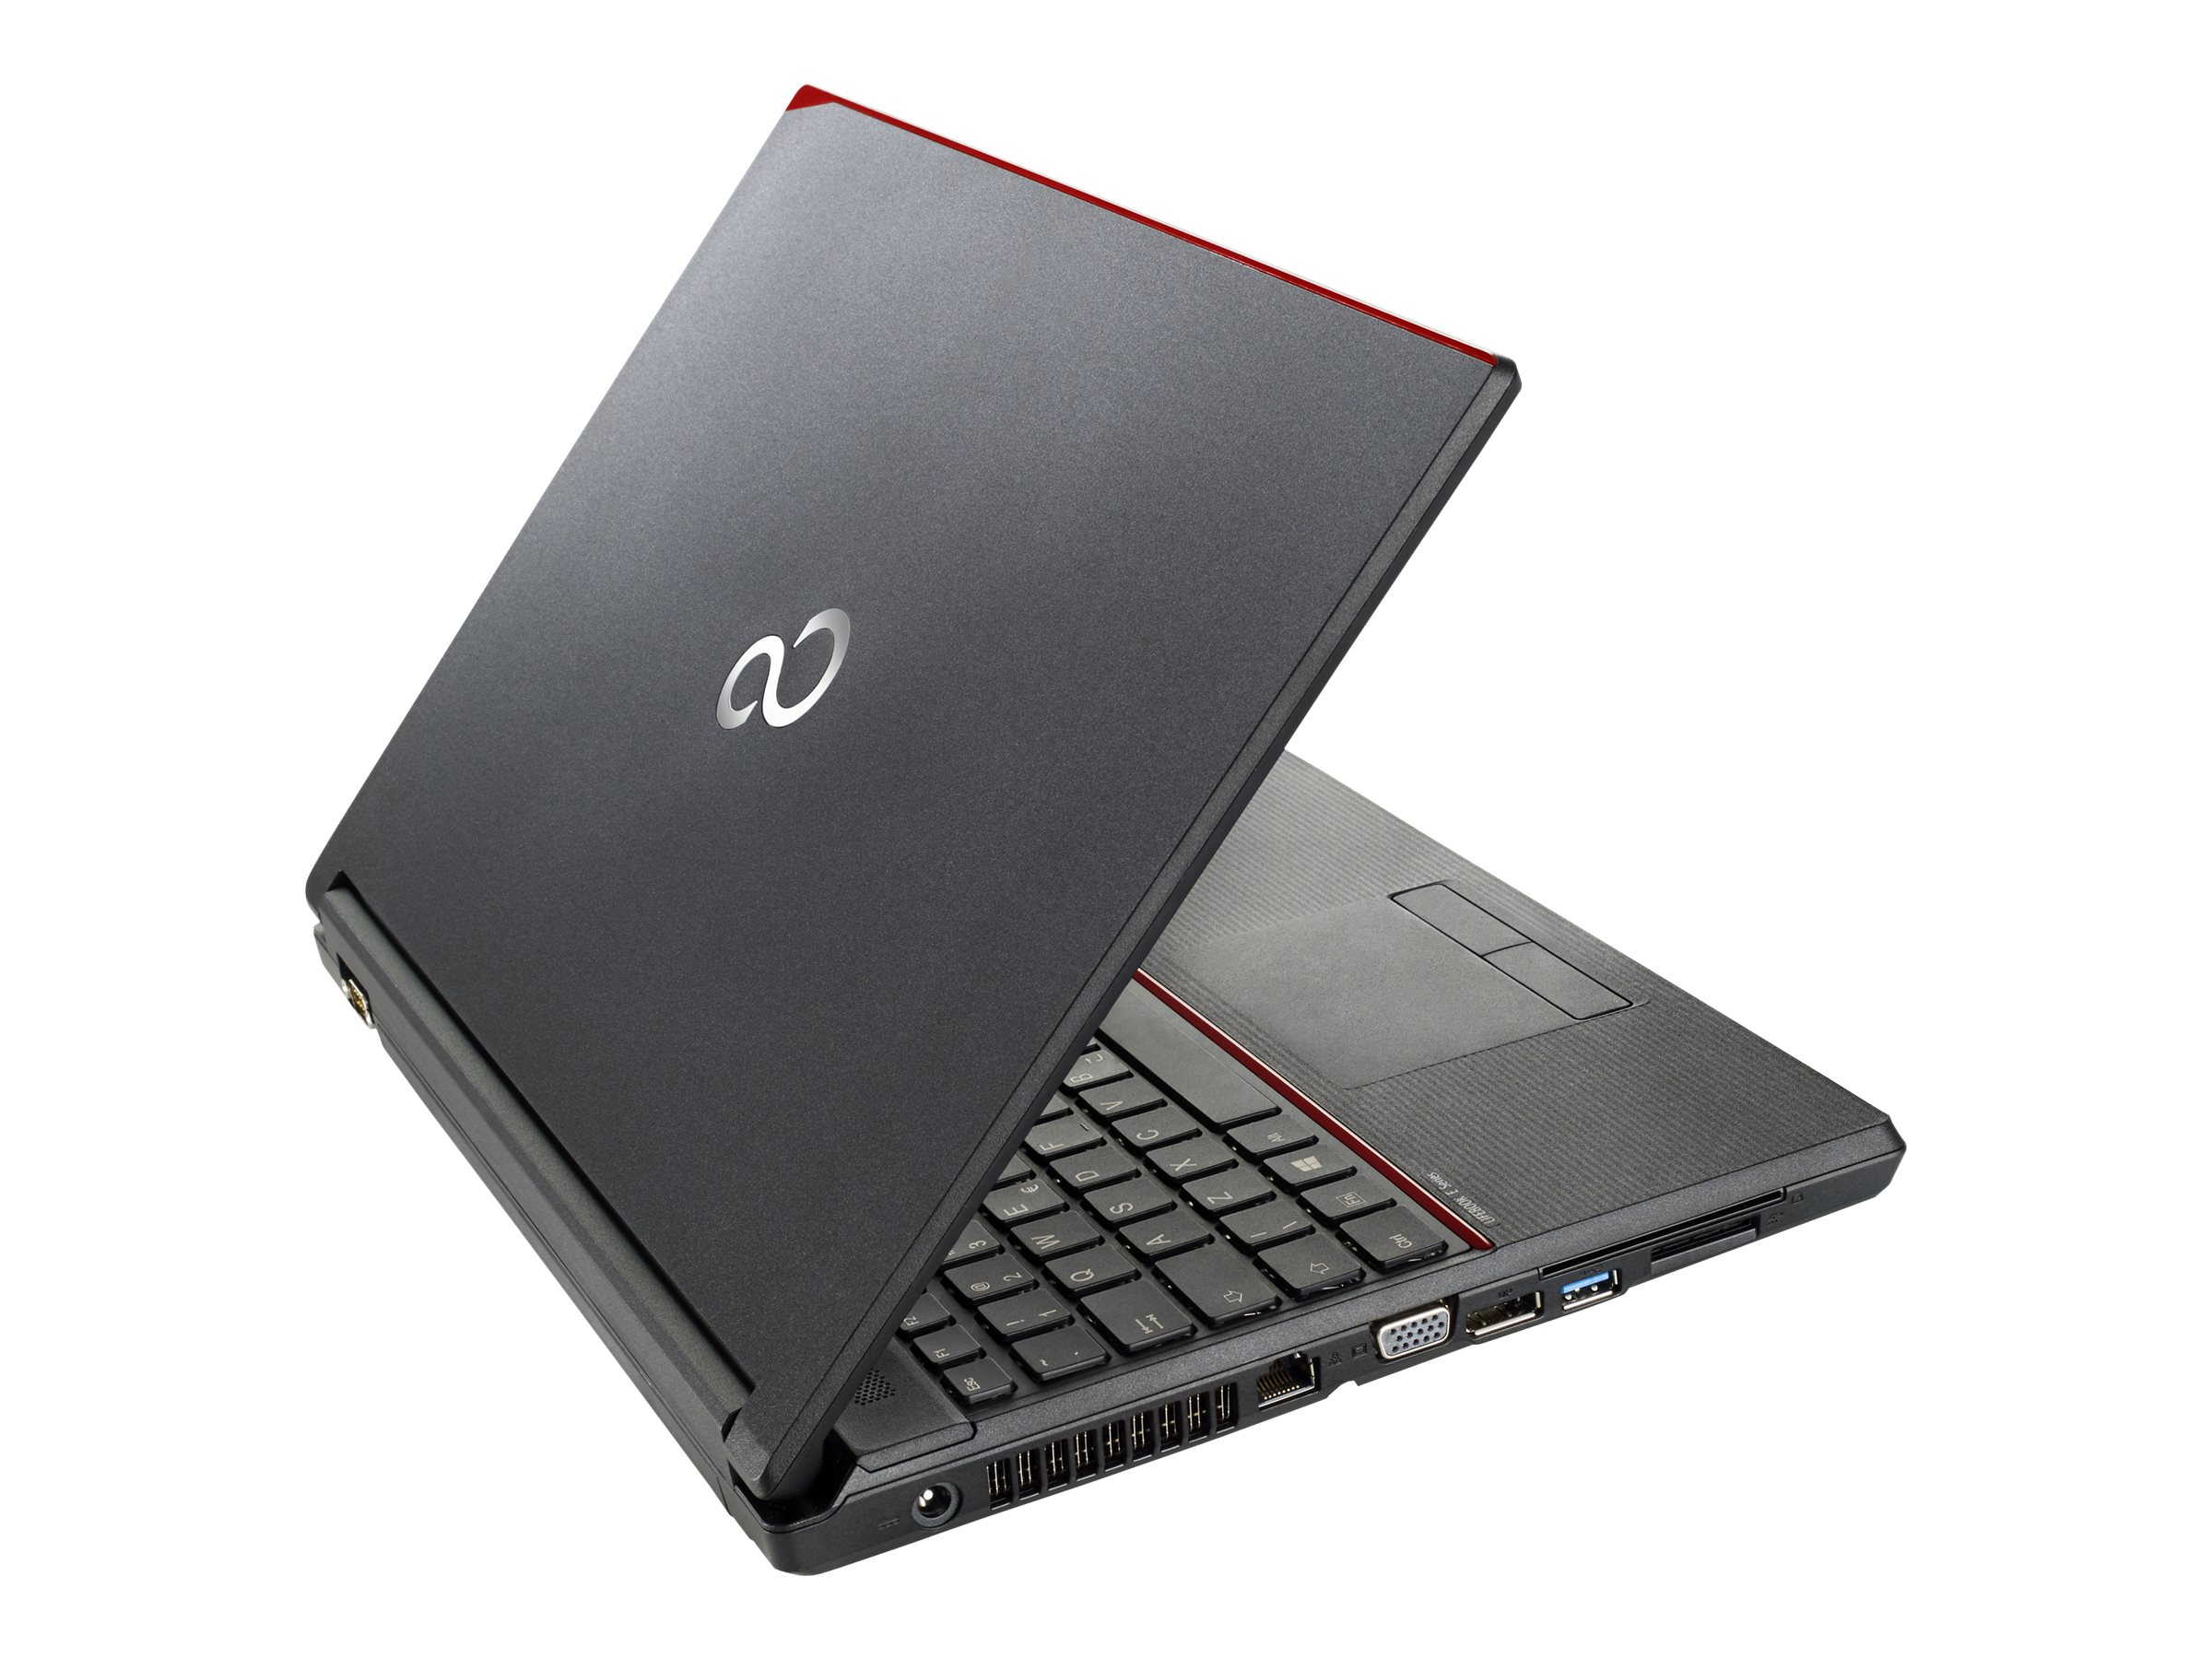 Fujitsu LifeBook E556 2.3GHz Core i5 15.6in display, SPFC-E556-001